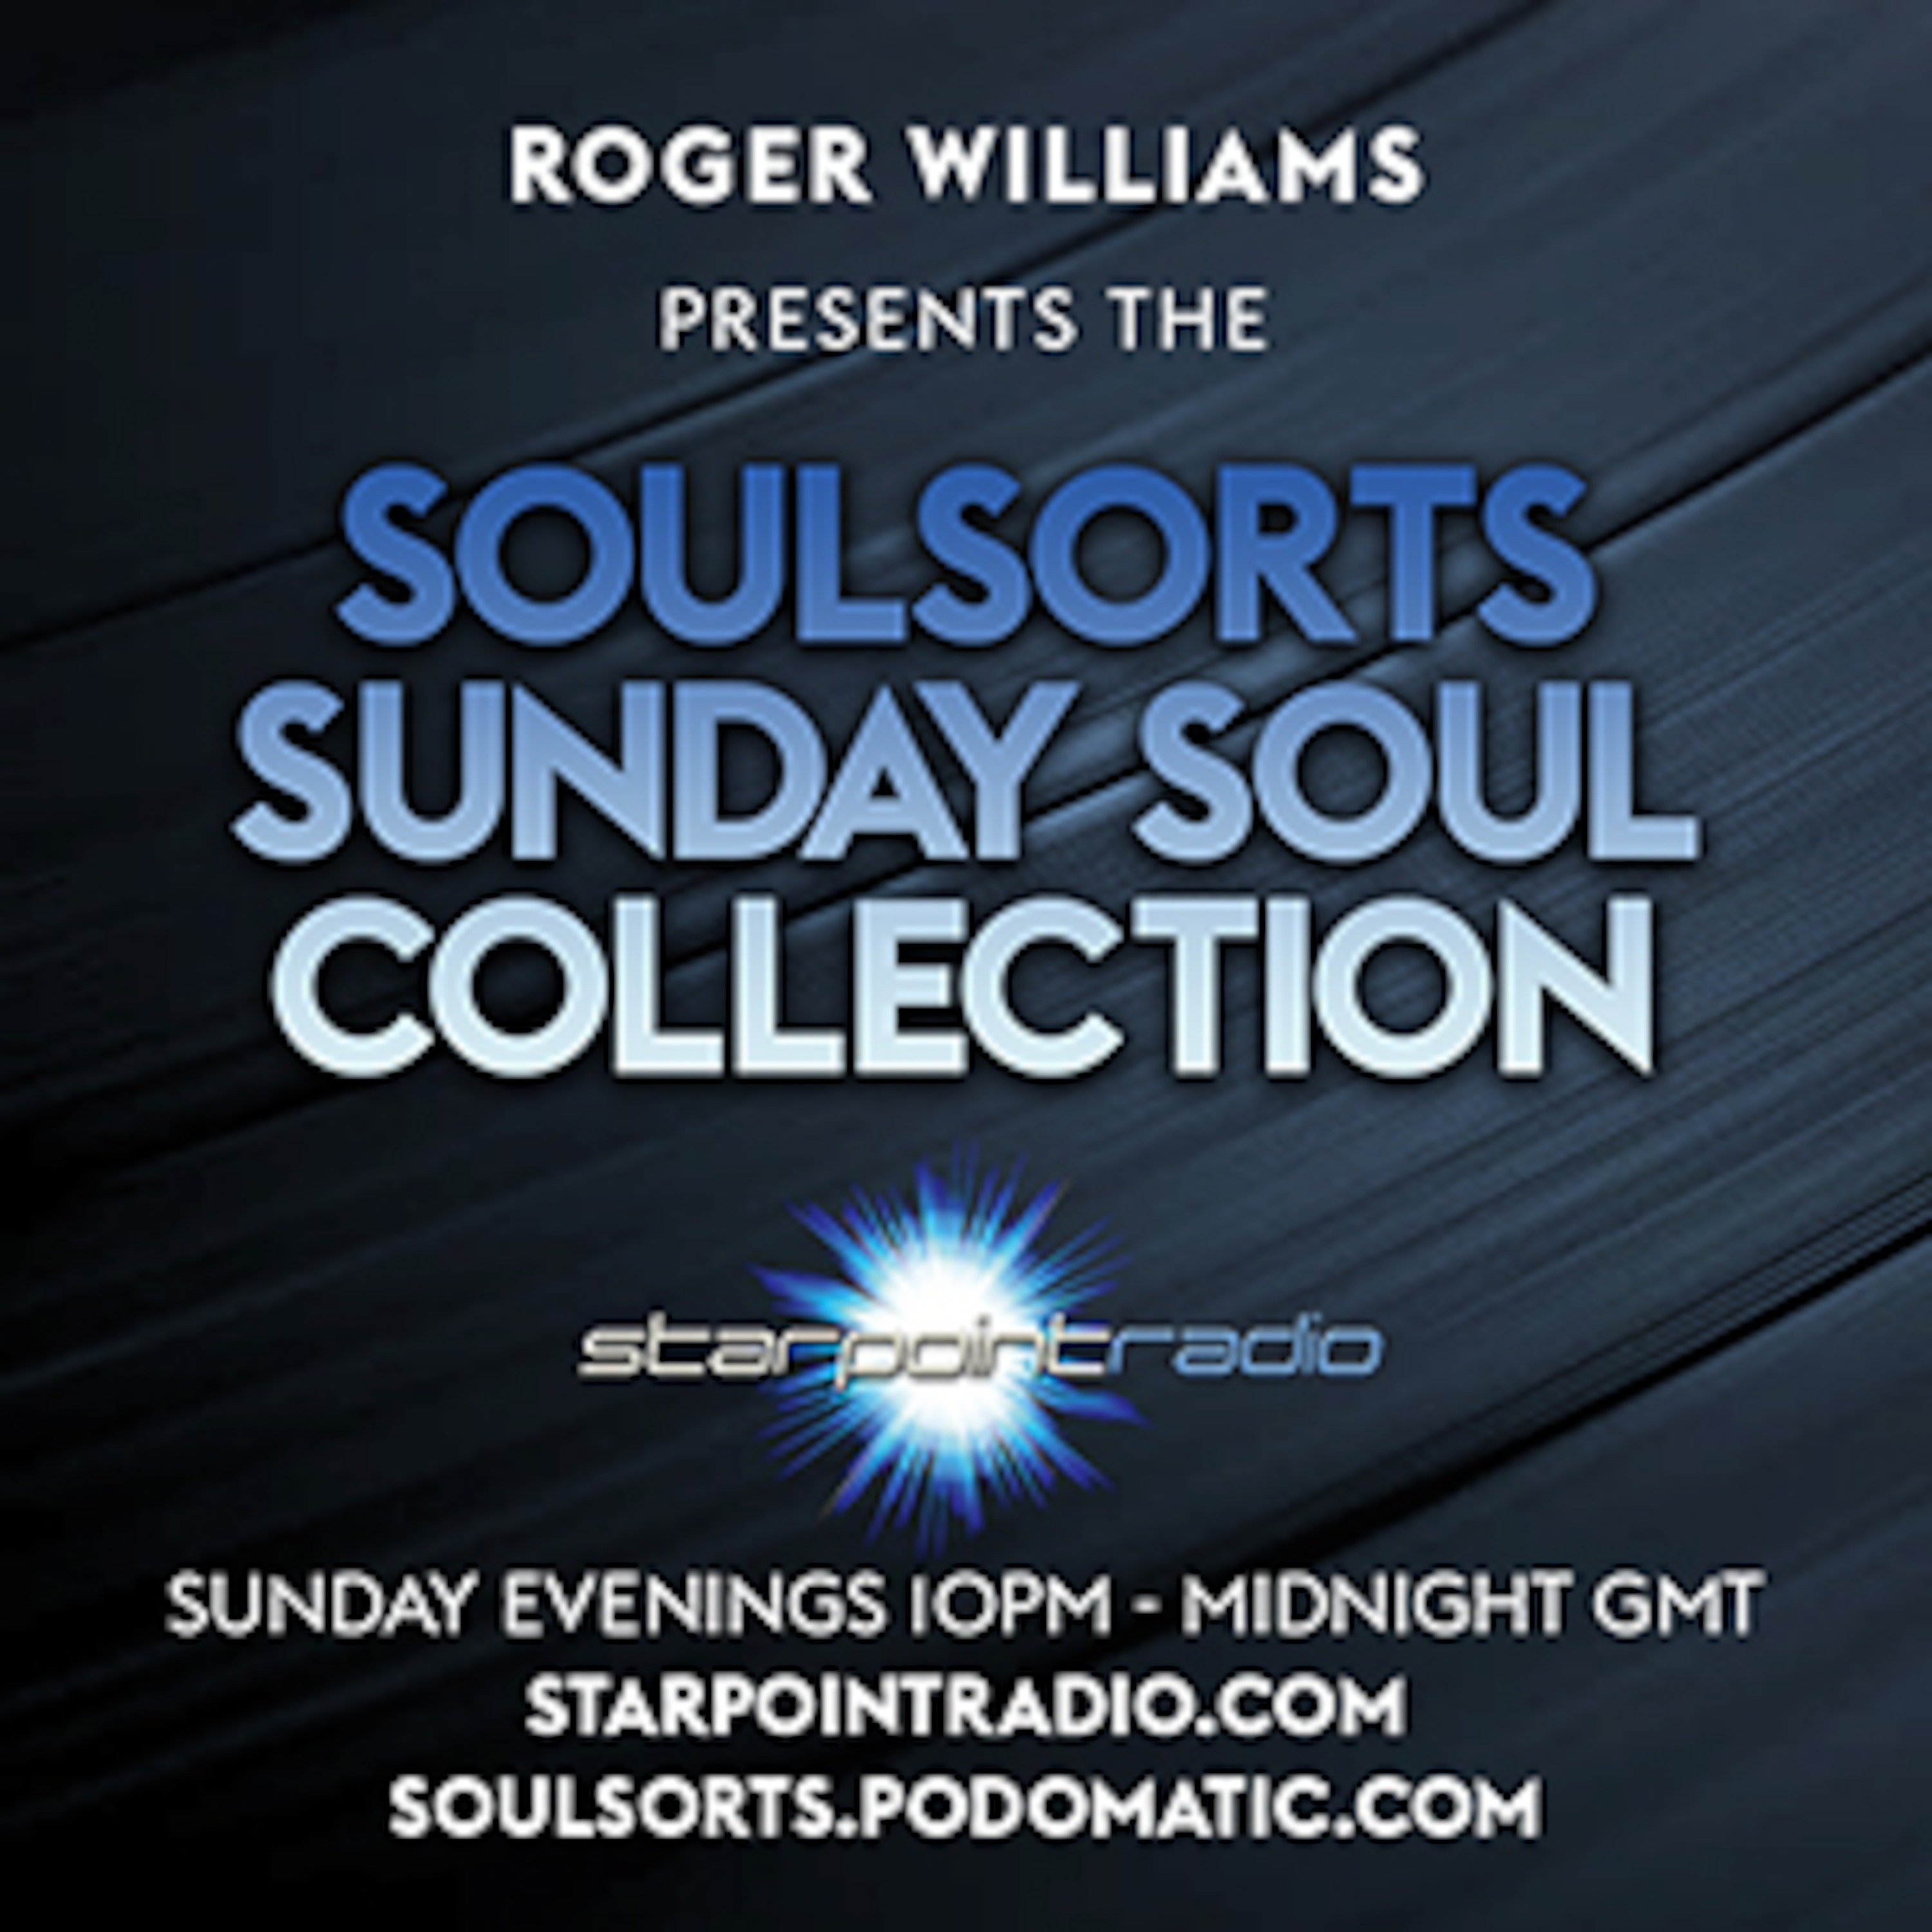 The Soulsorts Sunday Soul Collection On Starpoint Radio